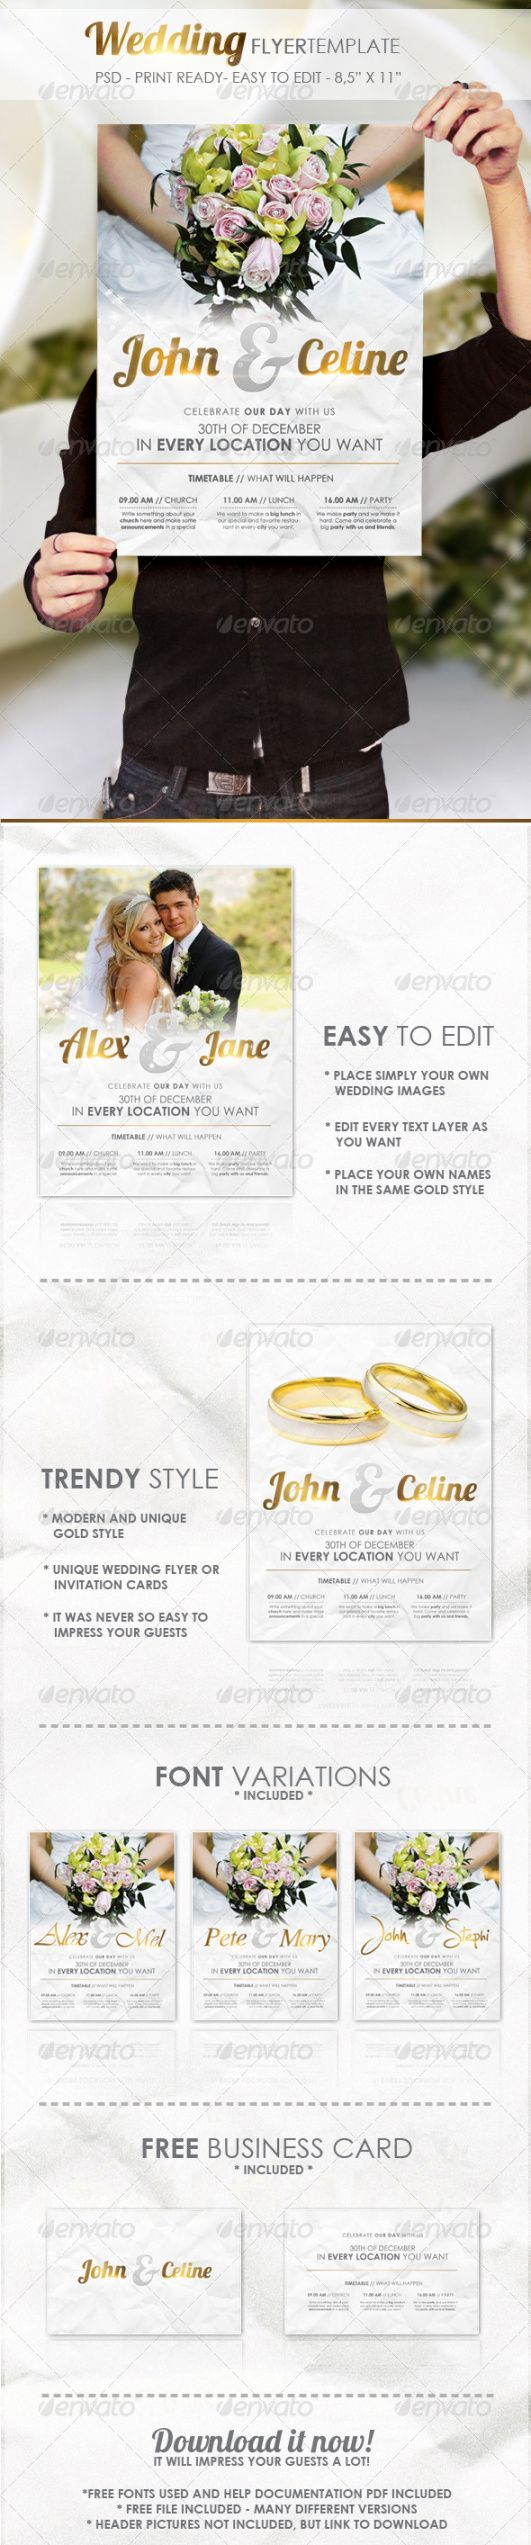 free wedding flyer template graphics designs & templates wedding invitation flyer template pdf